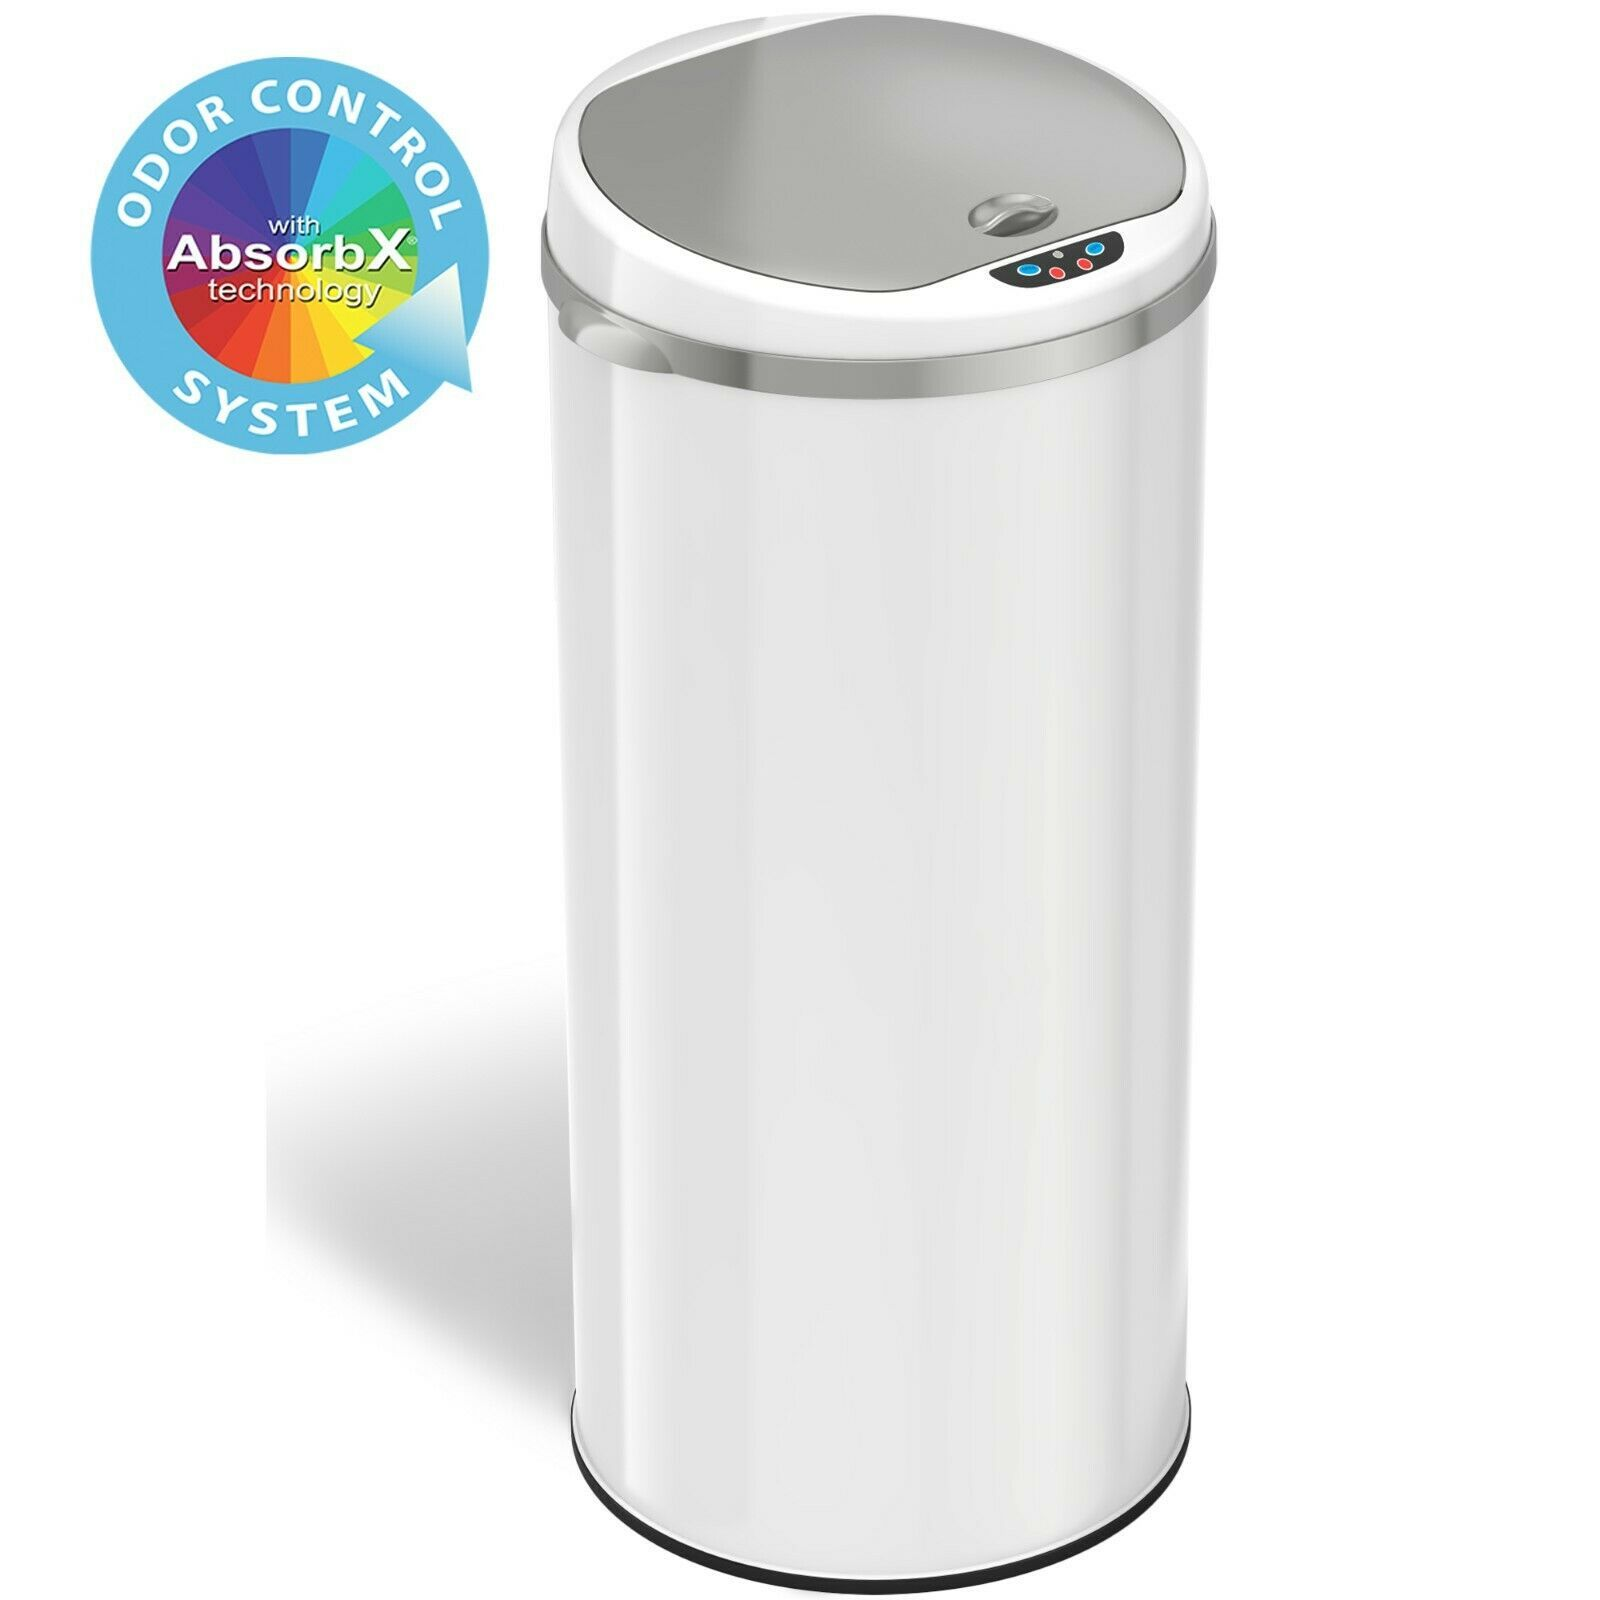 Touchless Automatic Sensor Trash Can 10 3 Inch Opening Multiple Size Options Ebay Bathroom Trash Can Trash Cans Brushed Nickel Bathroom